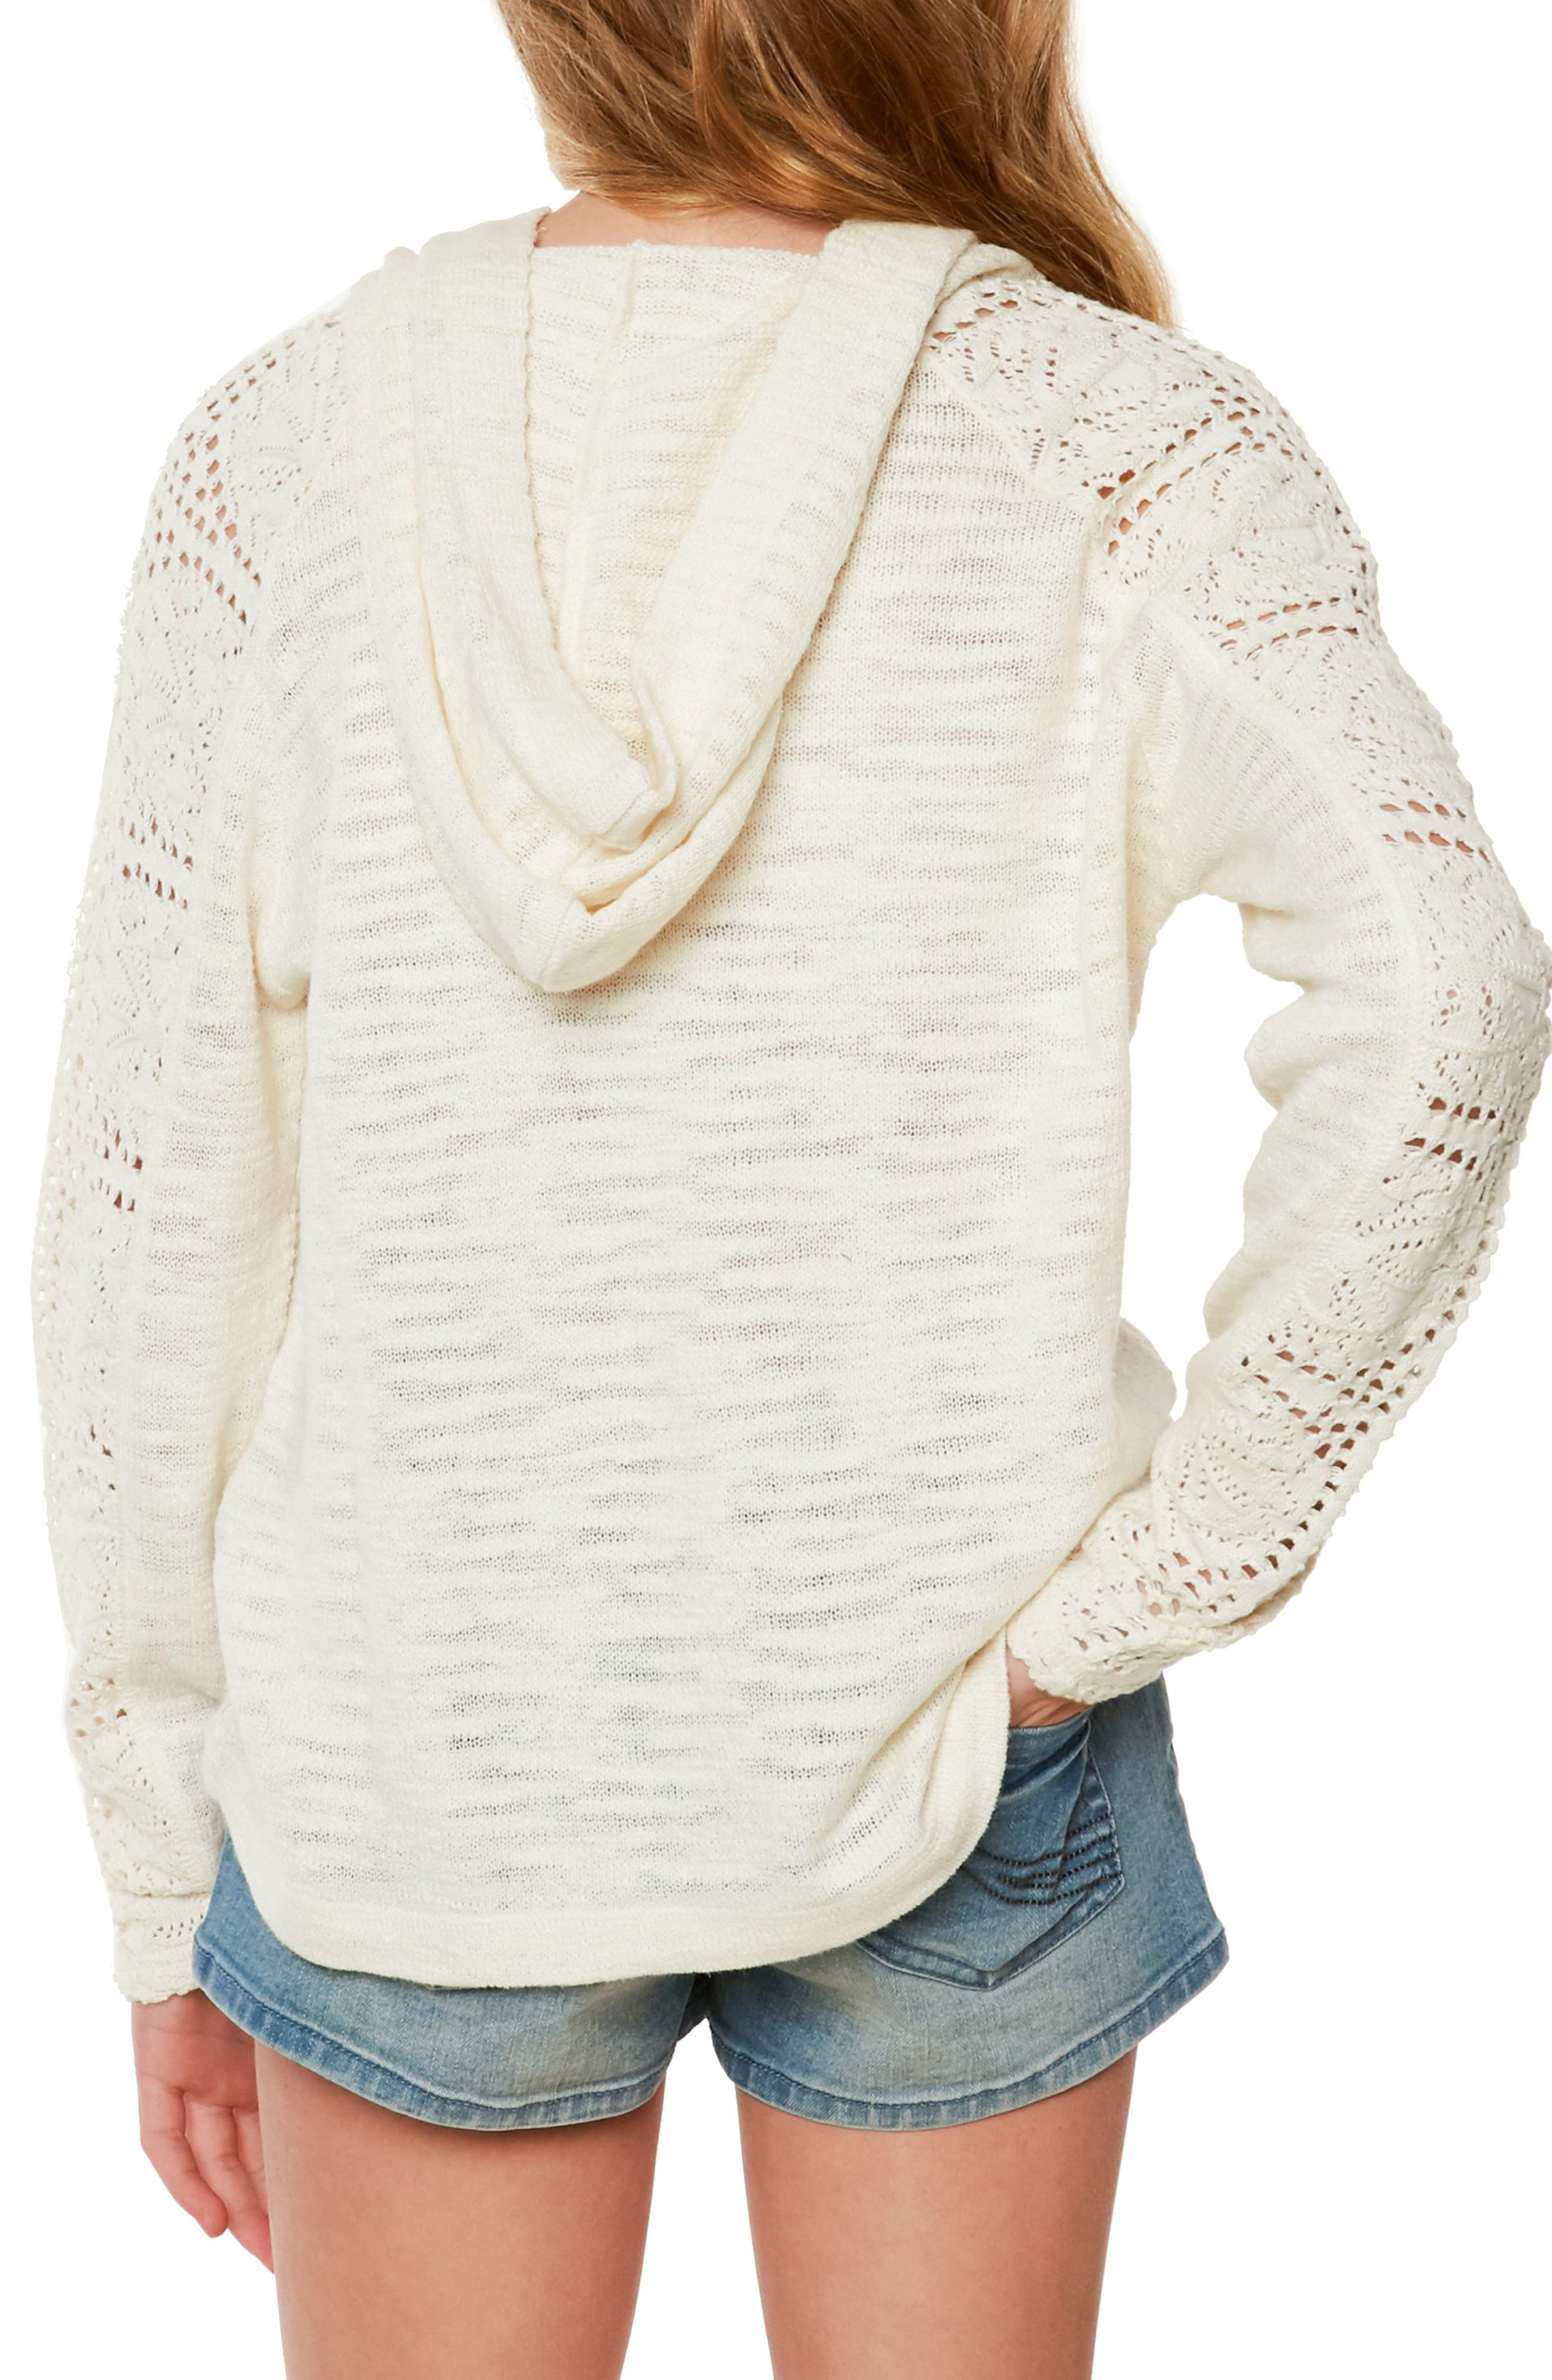 Amore Hooded Sweater,                             Alternate thumbnail 2, color,                             Naked - Wwh